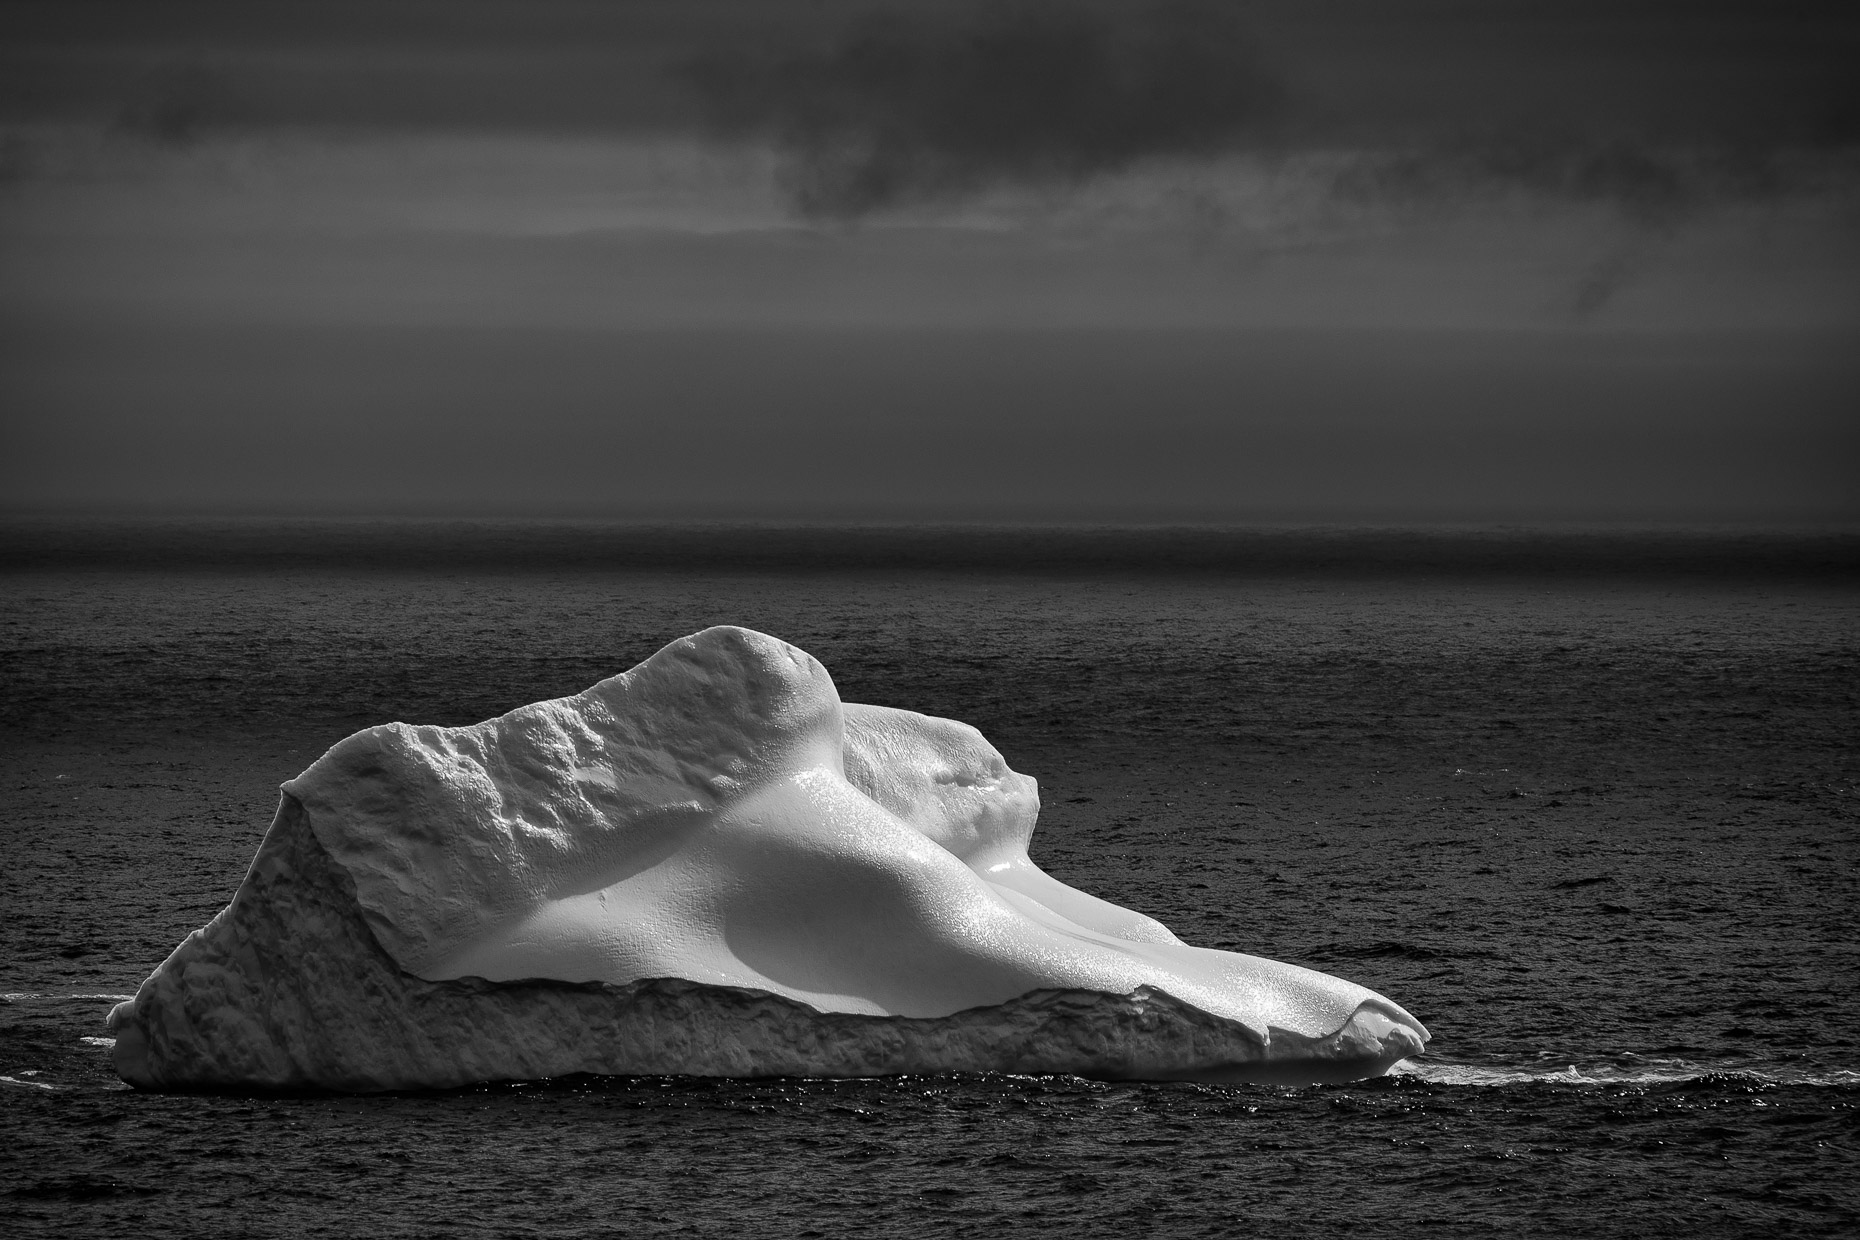 Iceberg, Conception Bay, Newfoundland, Canada